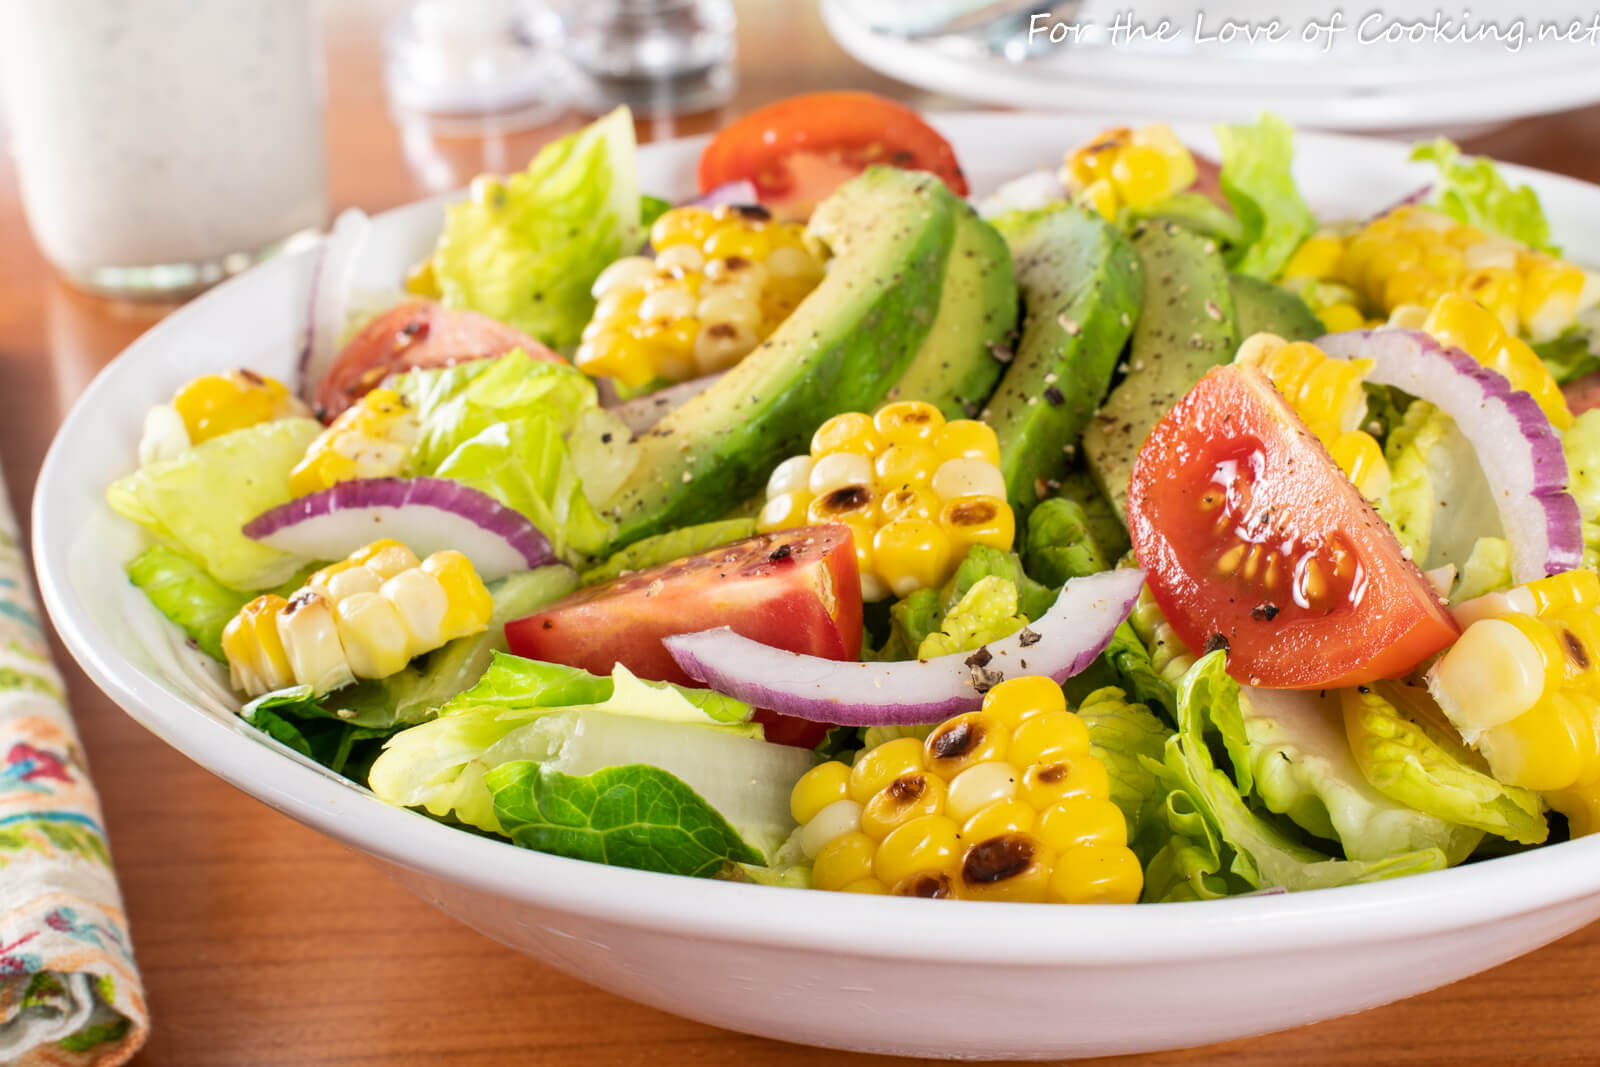 Summer Salad with Grilled Corn, Avocado, & Tomatoes with Buttermilk Ranch Dressing